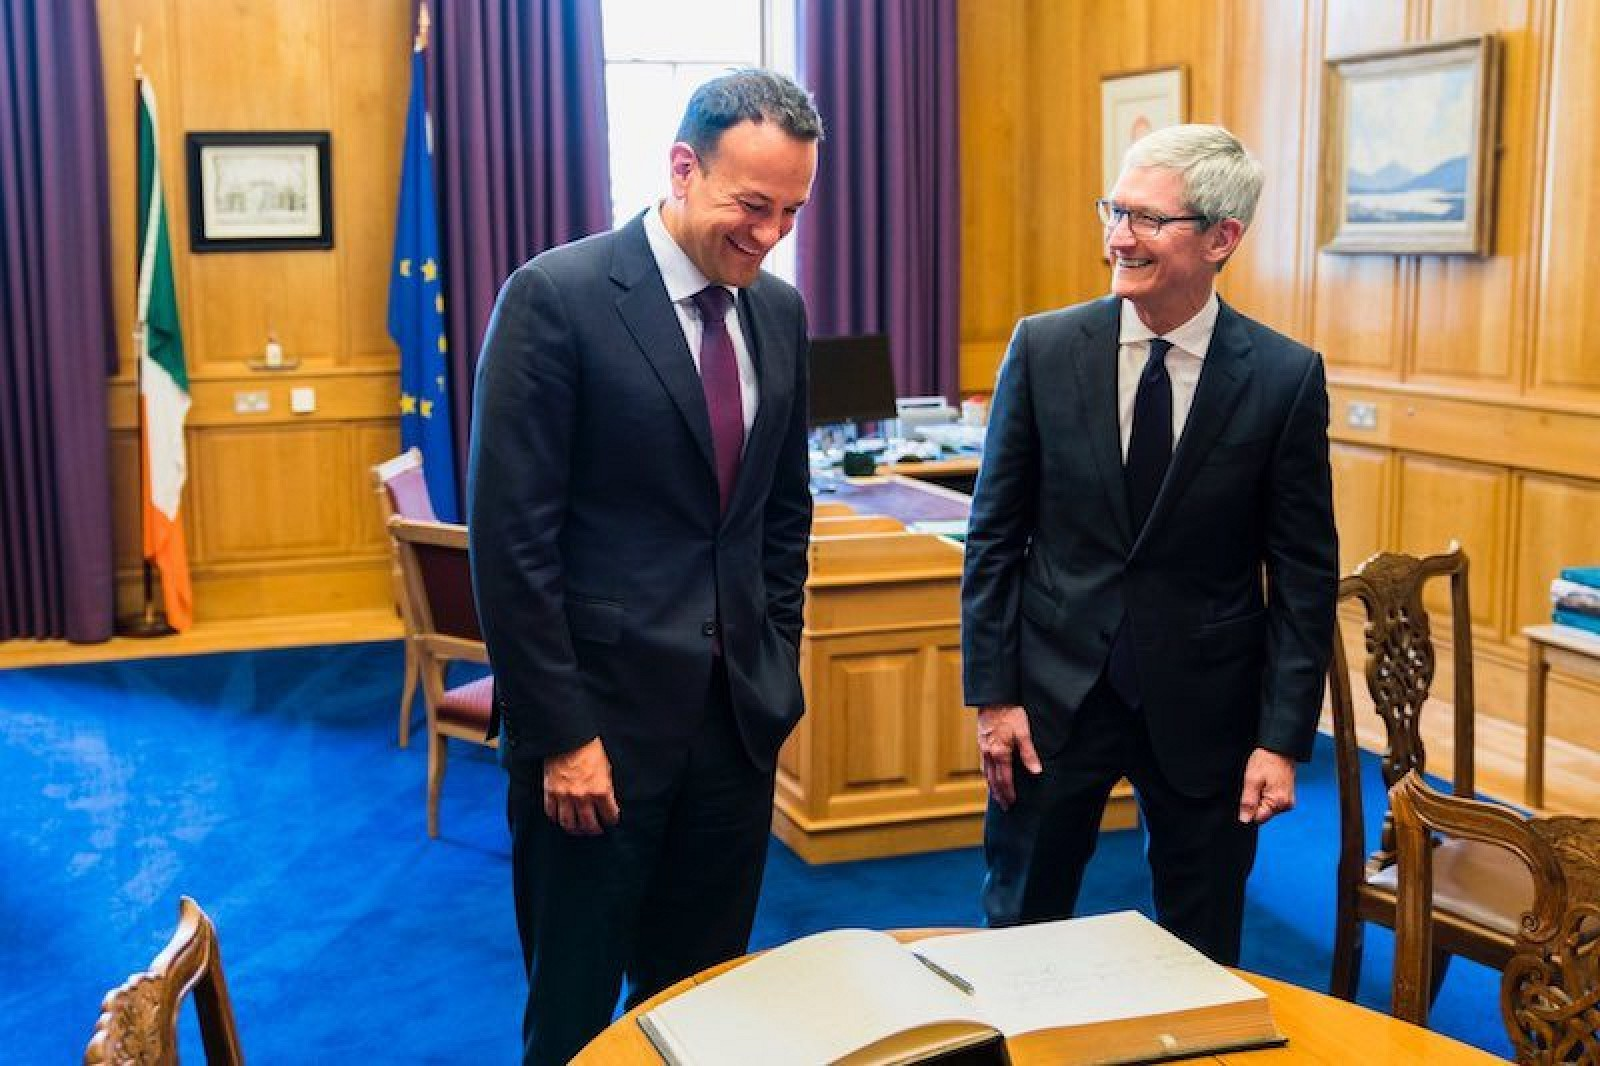 photo image Tim Cook Visits Ireland as Apple Promotes Its Job Creation in Europe